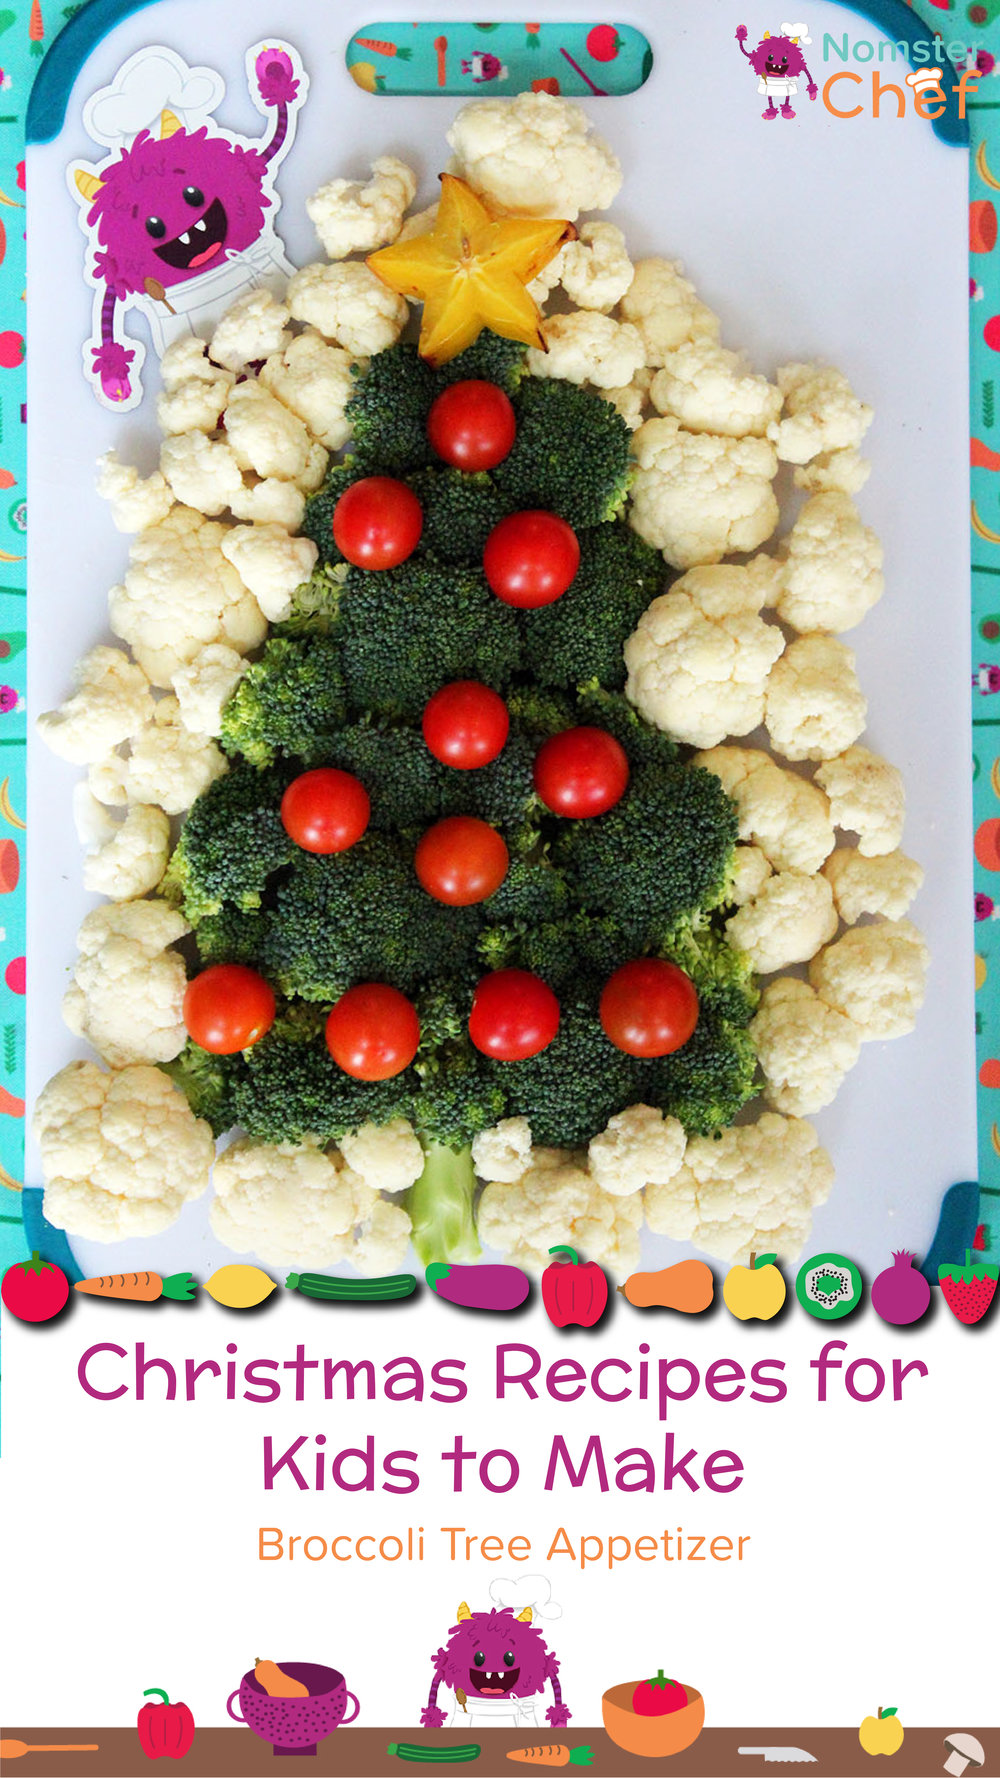 Christmas Recipes for Kids to Make-Broccoli Tree Appetizer - Nomster Chef-01.jpg